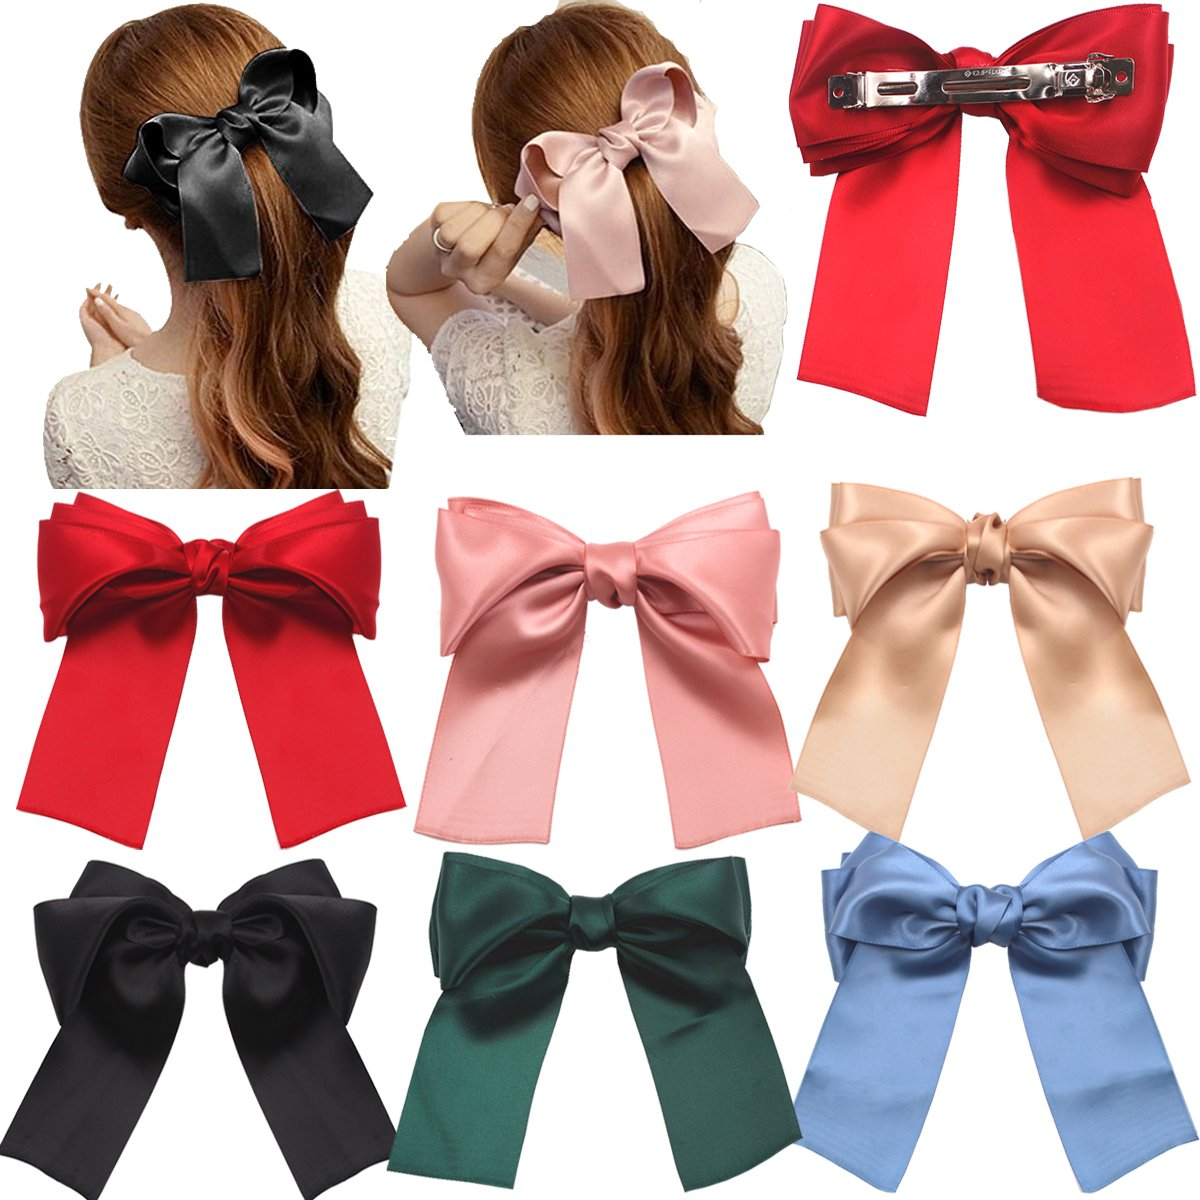 Kids' Clothing, Shoes & Accs Clothing, Shoes & Accessories Big Bow Hair Bow Pin Alligator Clip Girls Ladies To Prevent And Cure Diseases